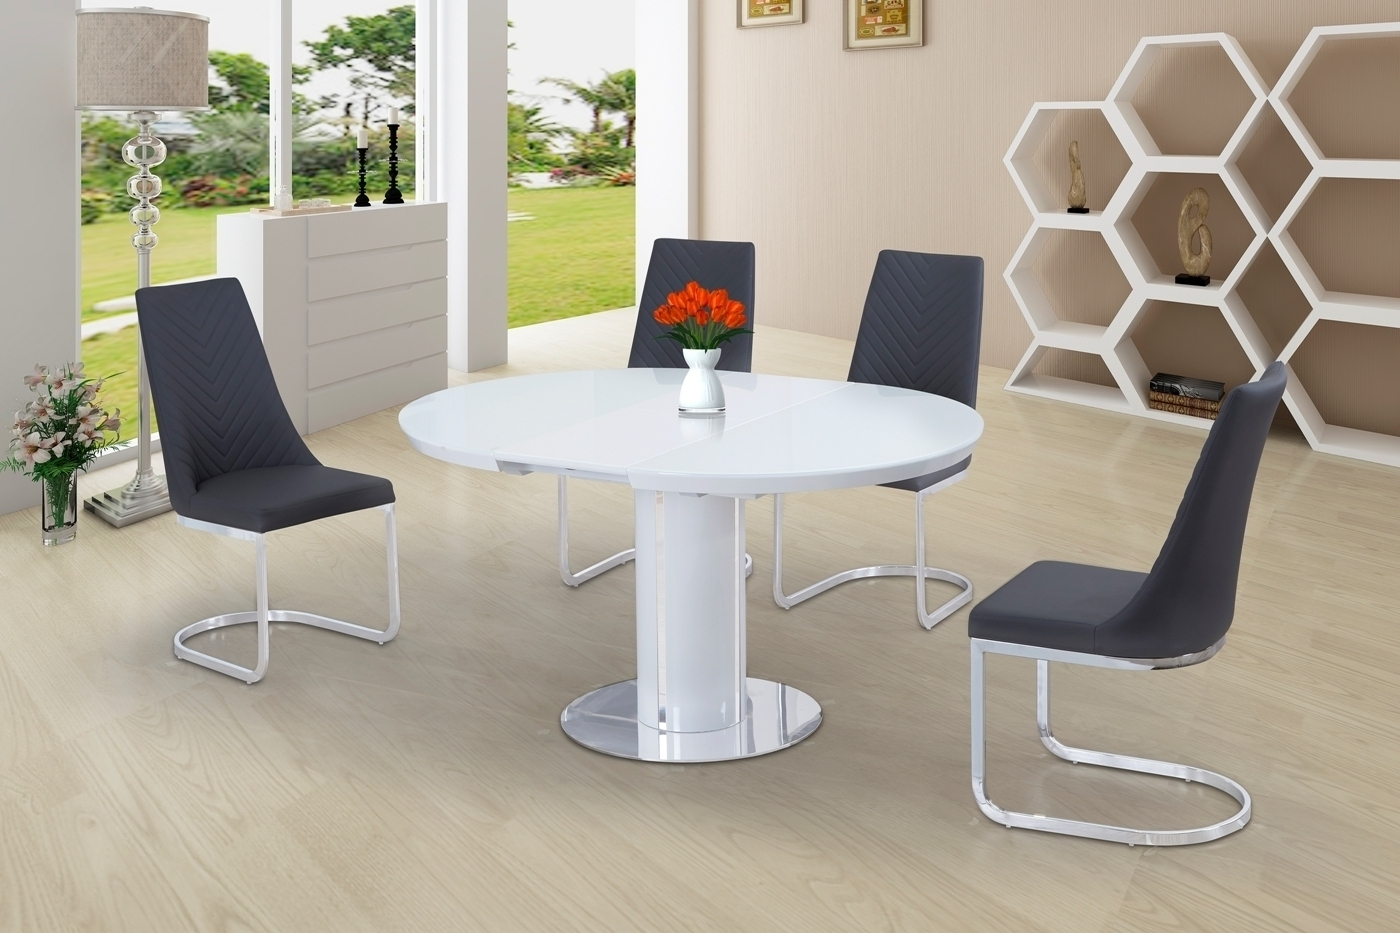 Round White Glass High Gloss Dining Table And 6 Grey Chairs Regarding Well Liked White Gloss Dining Sets (View 11 of 25)